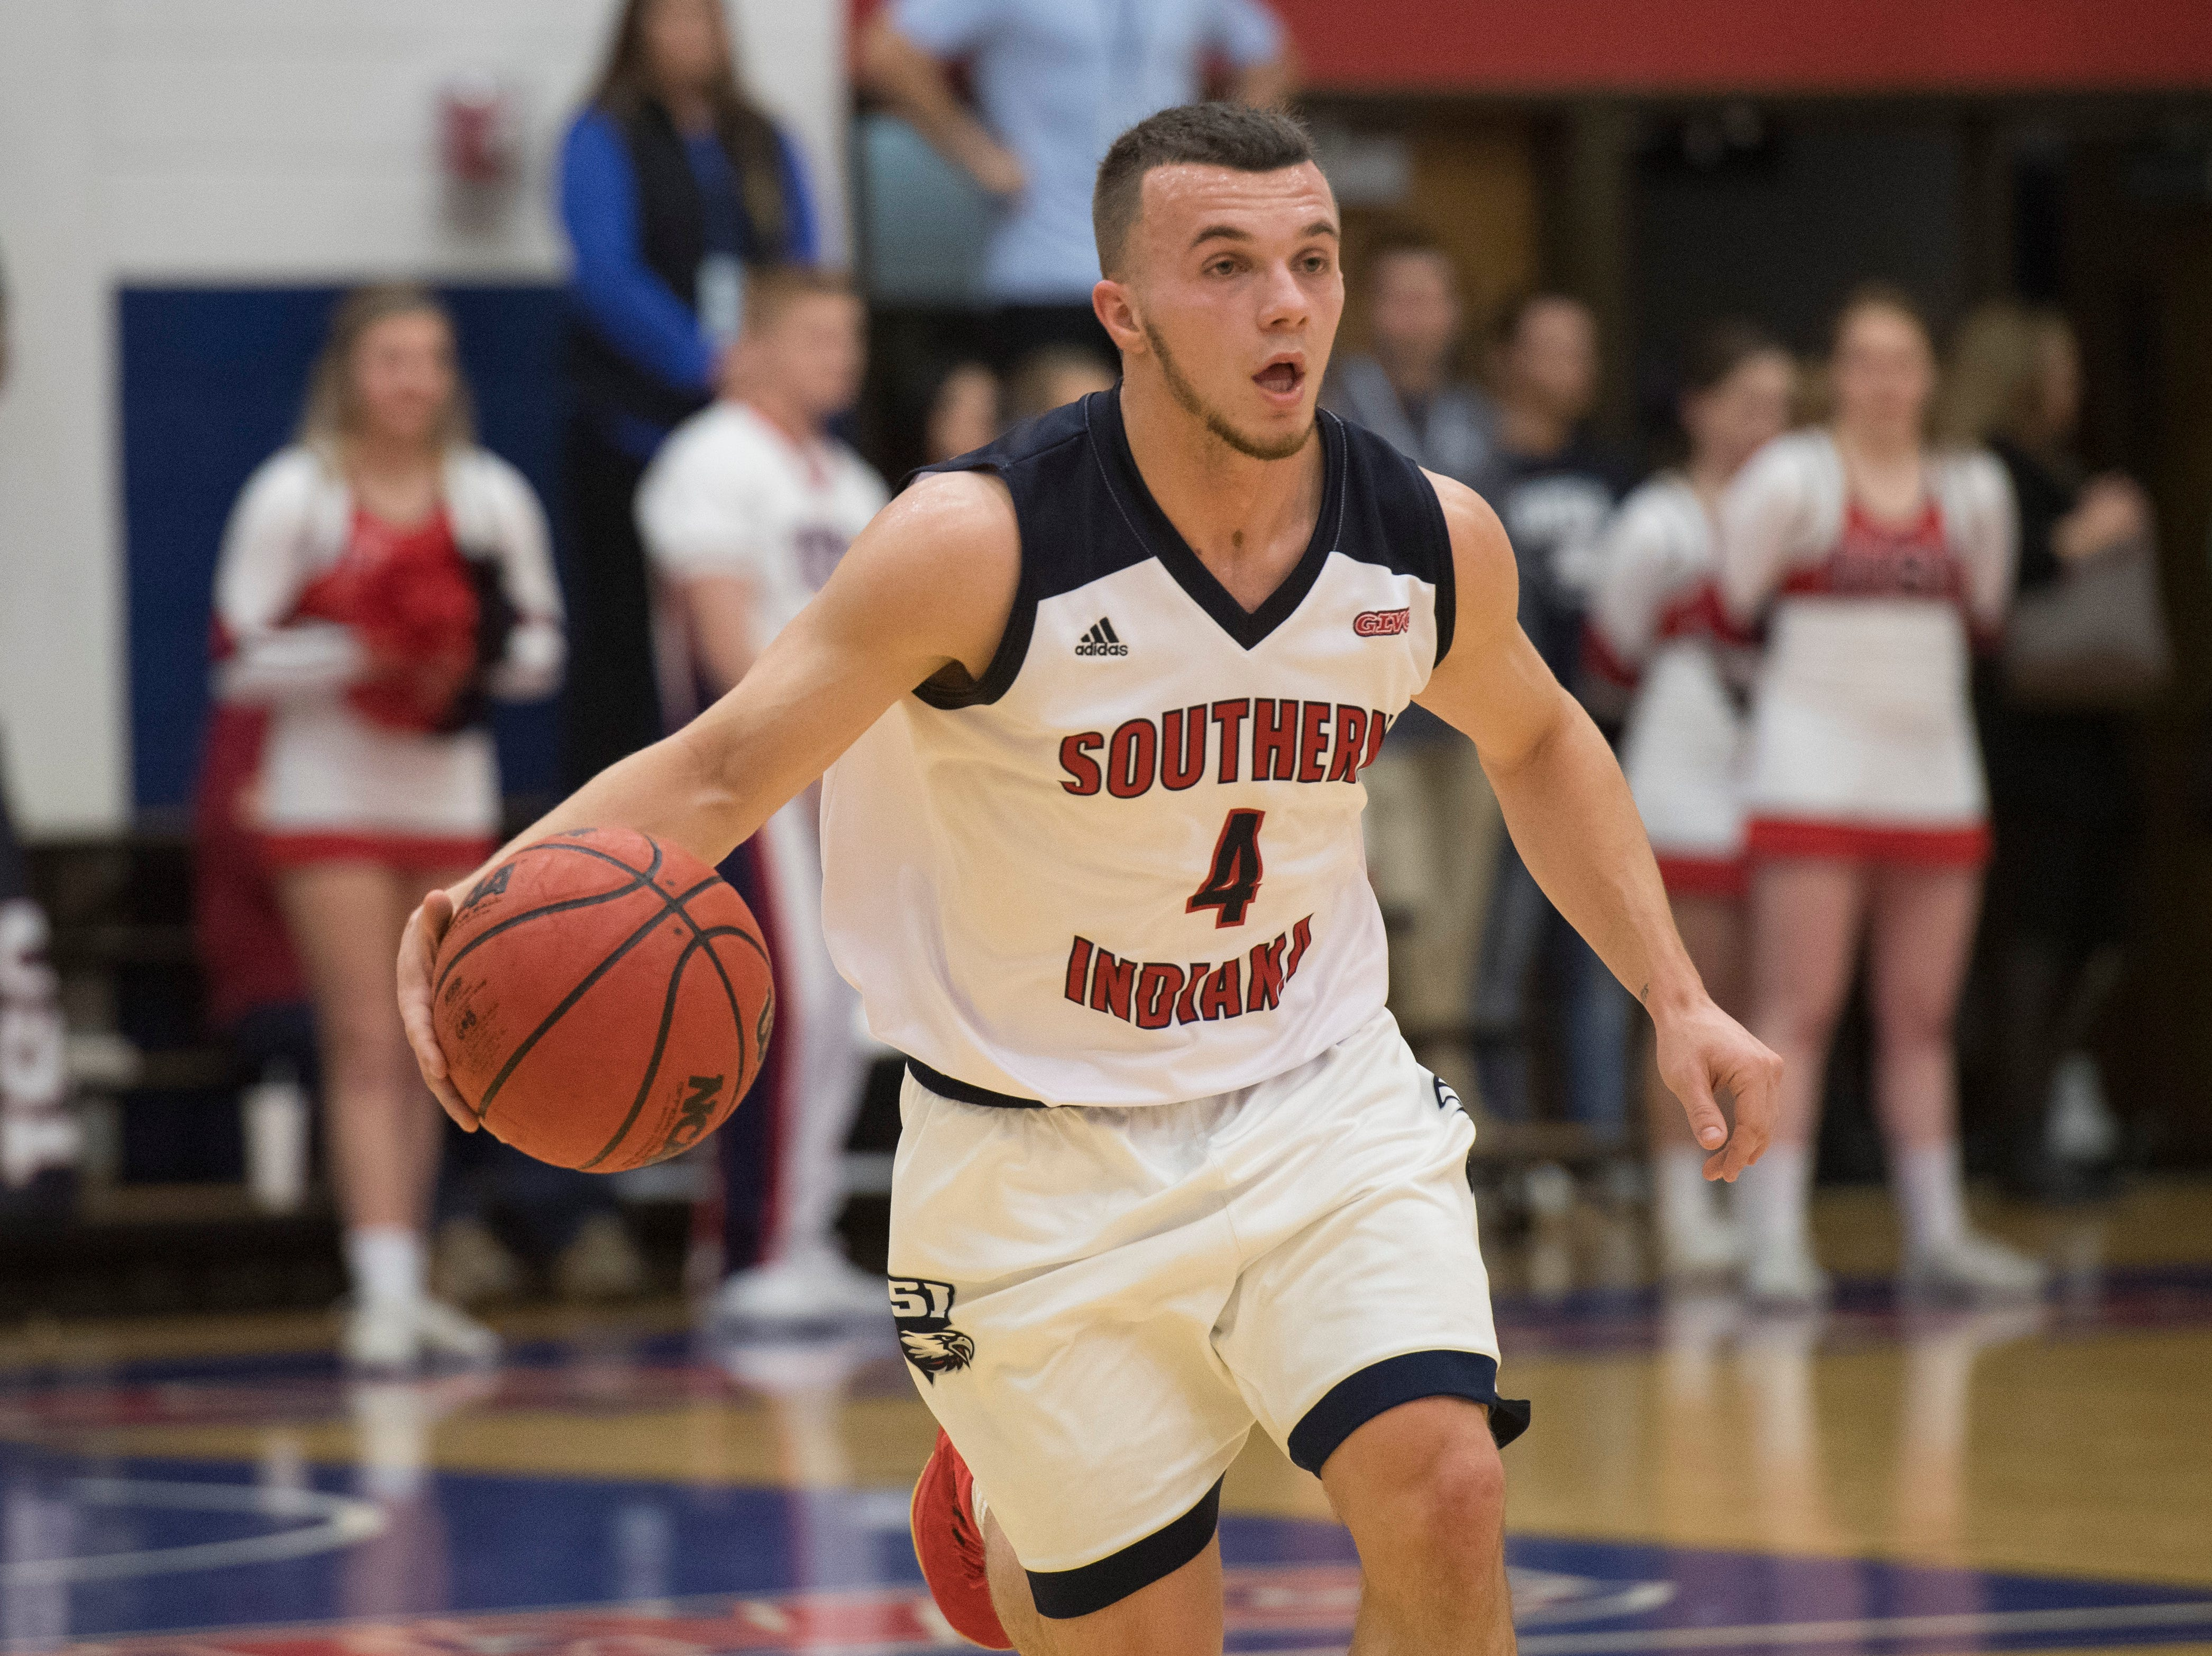 USI's Braden Fitzjerrells (4) yells out to teammates during the USI vs Bellarmine basketball game at the PAC Saturday, Dec. 1, 2018.